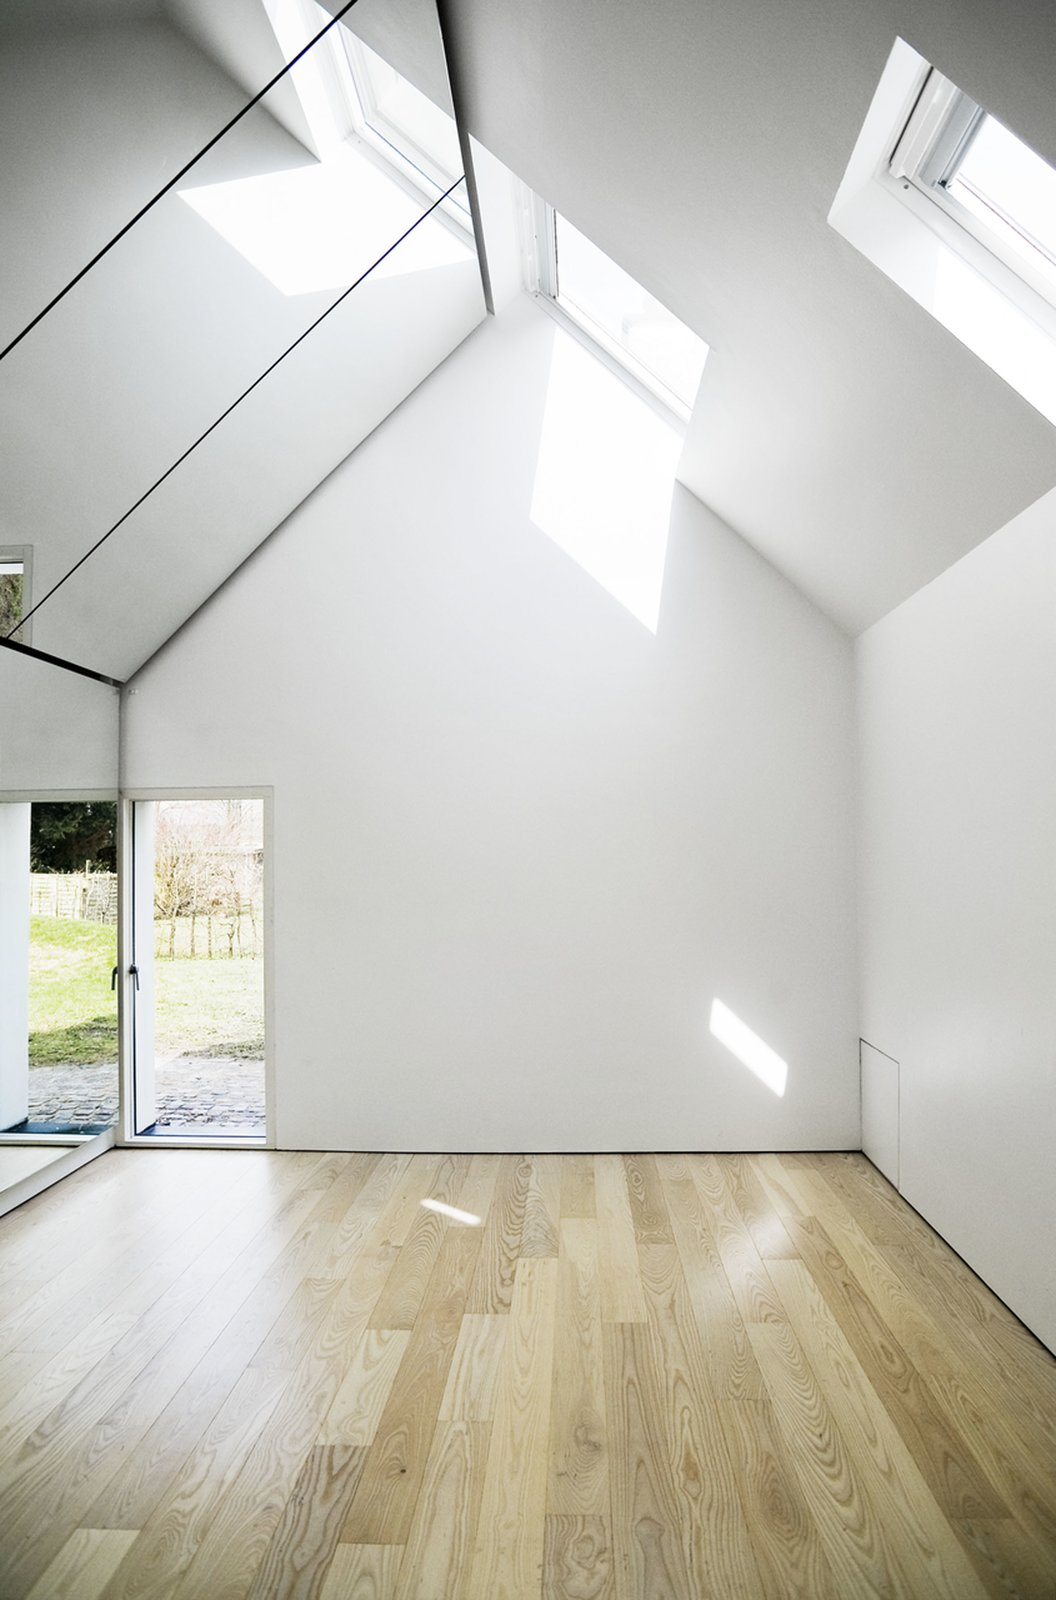 """Inside the studio lies a spacious, light-filled interior. It is the perfect place for Søren's comedy shows, sketches, and music, but also provides a calm, pleasant space shared by the whole family. """"Our kids enjoy being in there and playing or falling asleep on the floor as well,"""" says Lone.  Photo 6 of 6 in Danish Farmhouse Turned Contemporary Art Studio"""